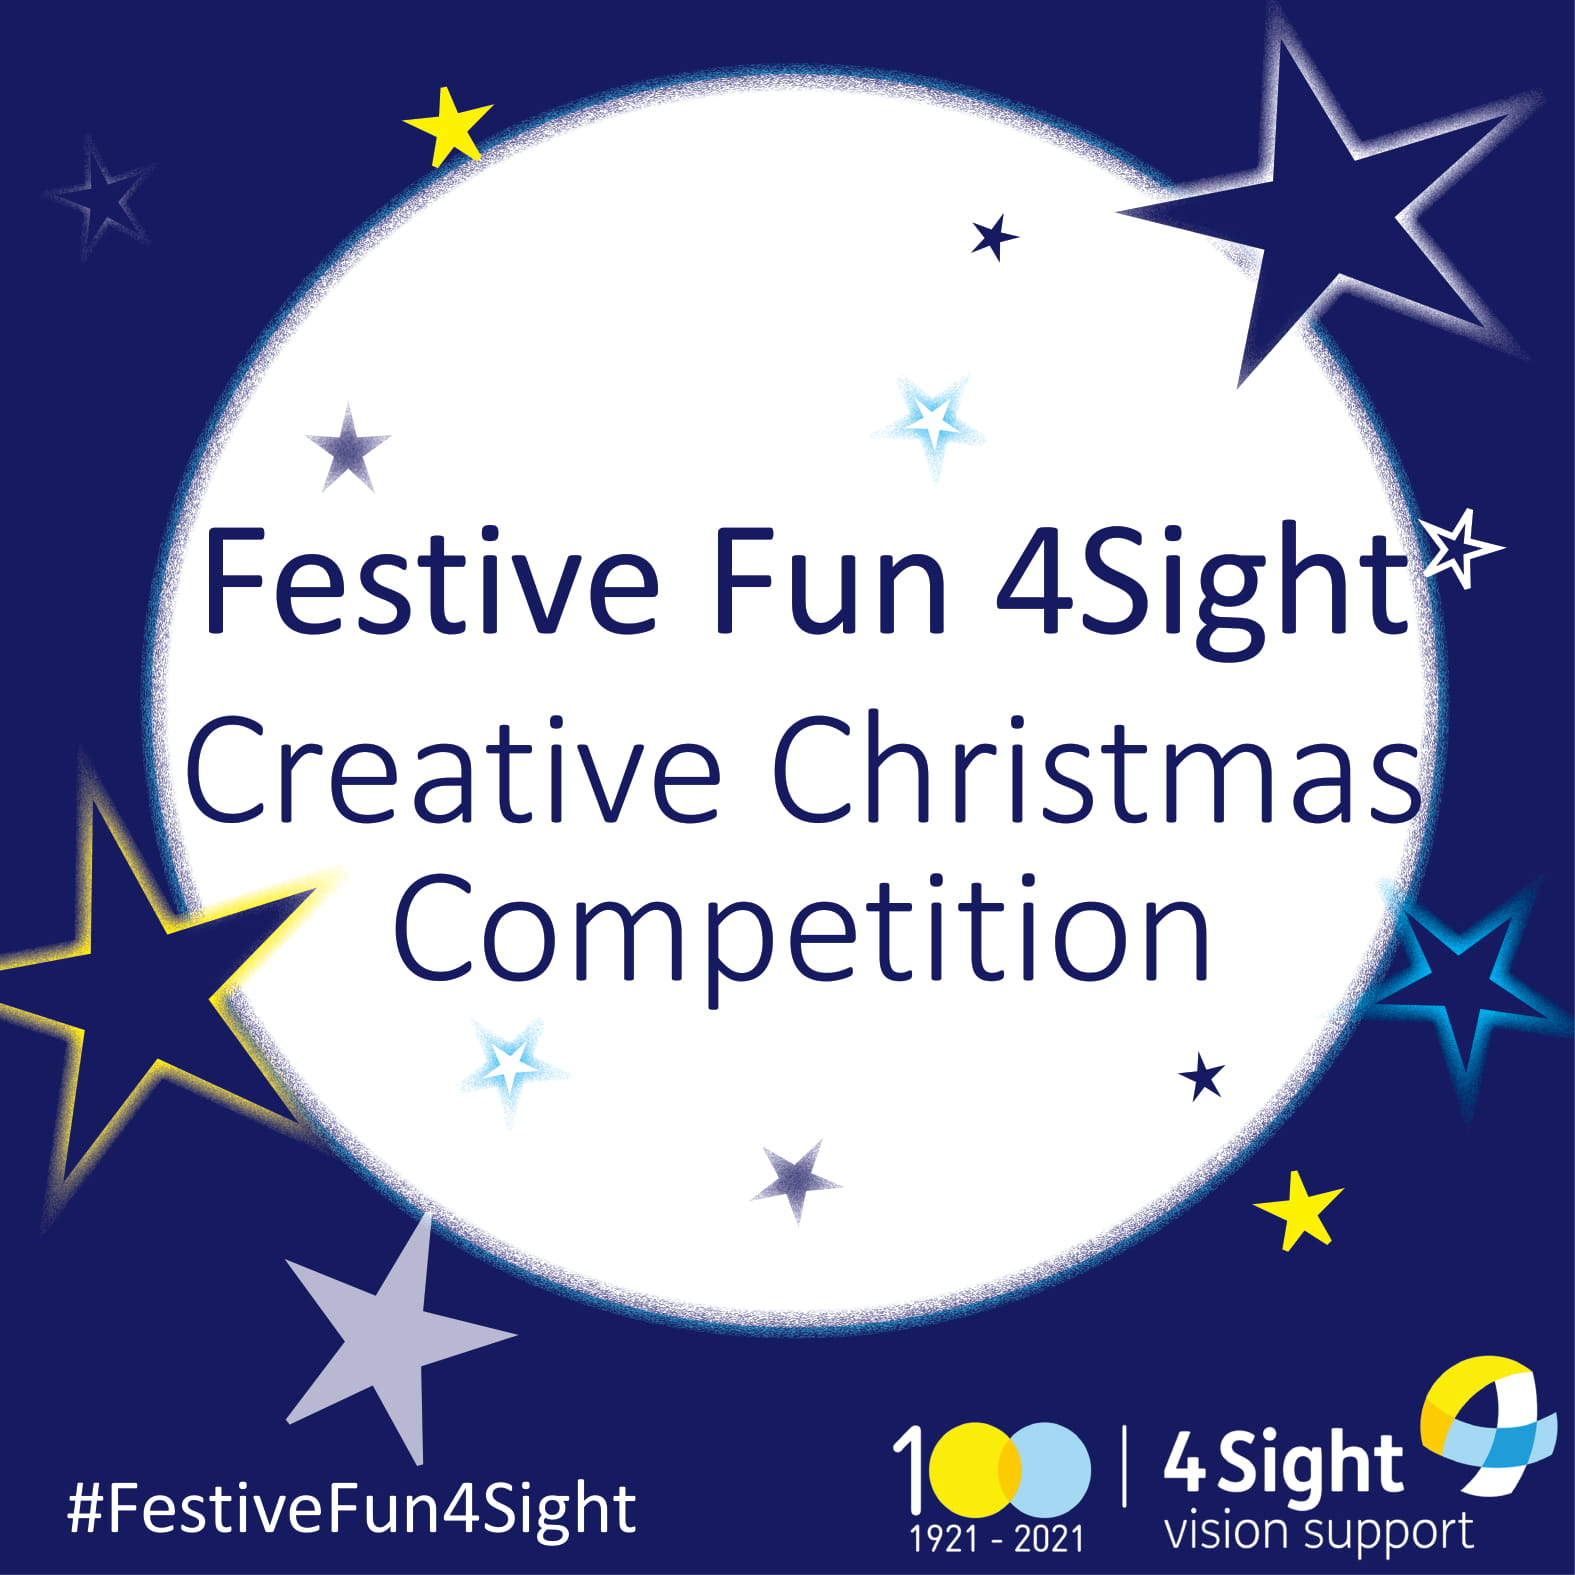 """Blue text reads """"Festive Fun 4Sight, Creative Christmas Competition"""" over a latge white circle that is placed on a dark blue background. Around the text is a variety of different sized stars in blue, white and yellow. Bottom left is white text reading """"#FestiveFun4Sight"""" and bottom right is the 4Sight Vision Support 100th logo."""